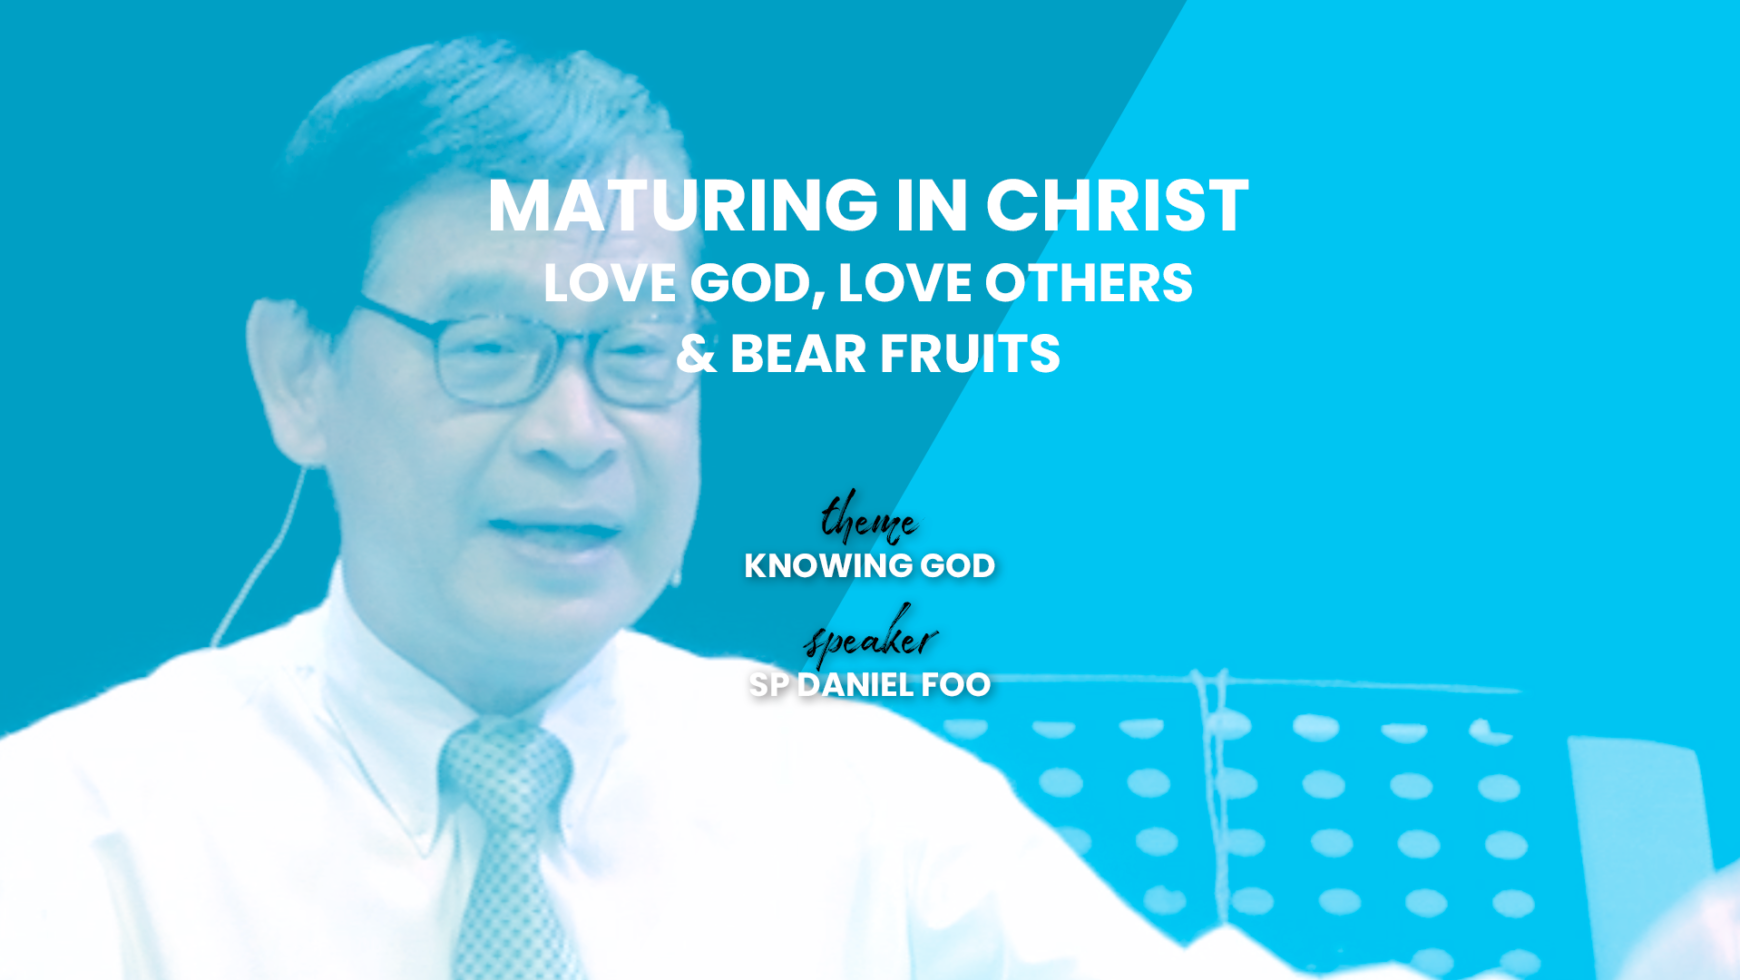 MATURING IN CHRIST – LOVE GOD, LOVE OTHERS & BEAR FRUIT